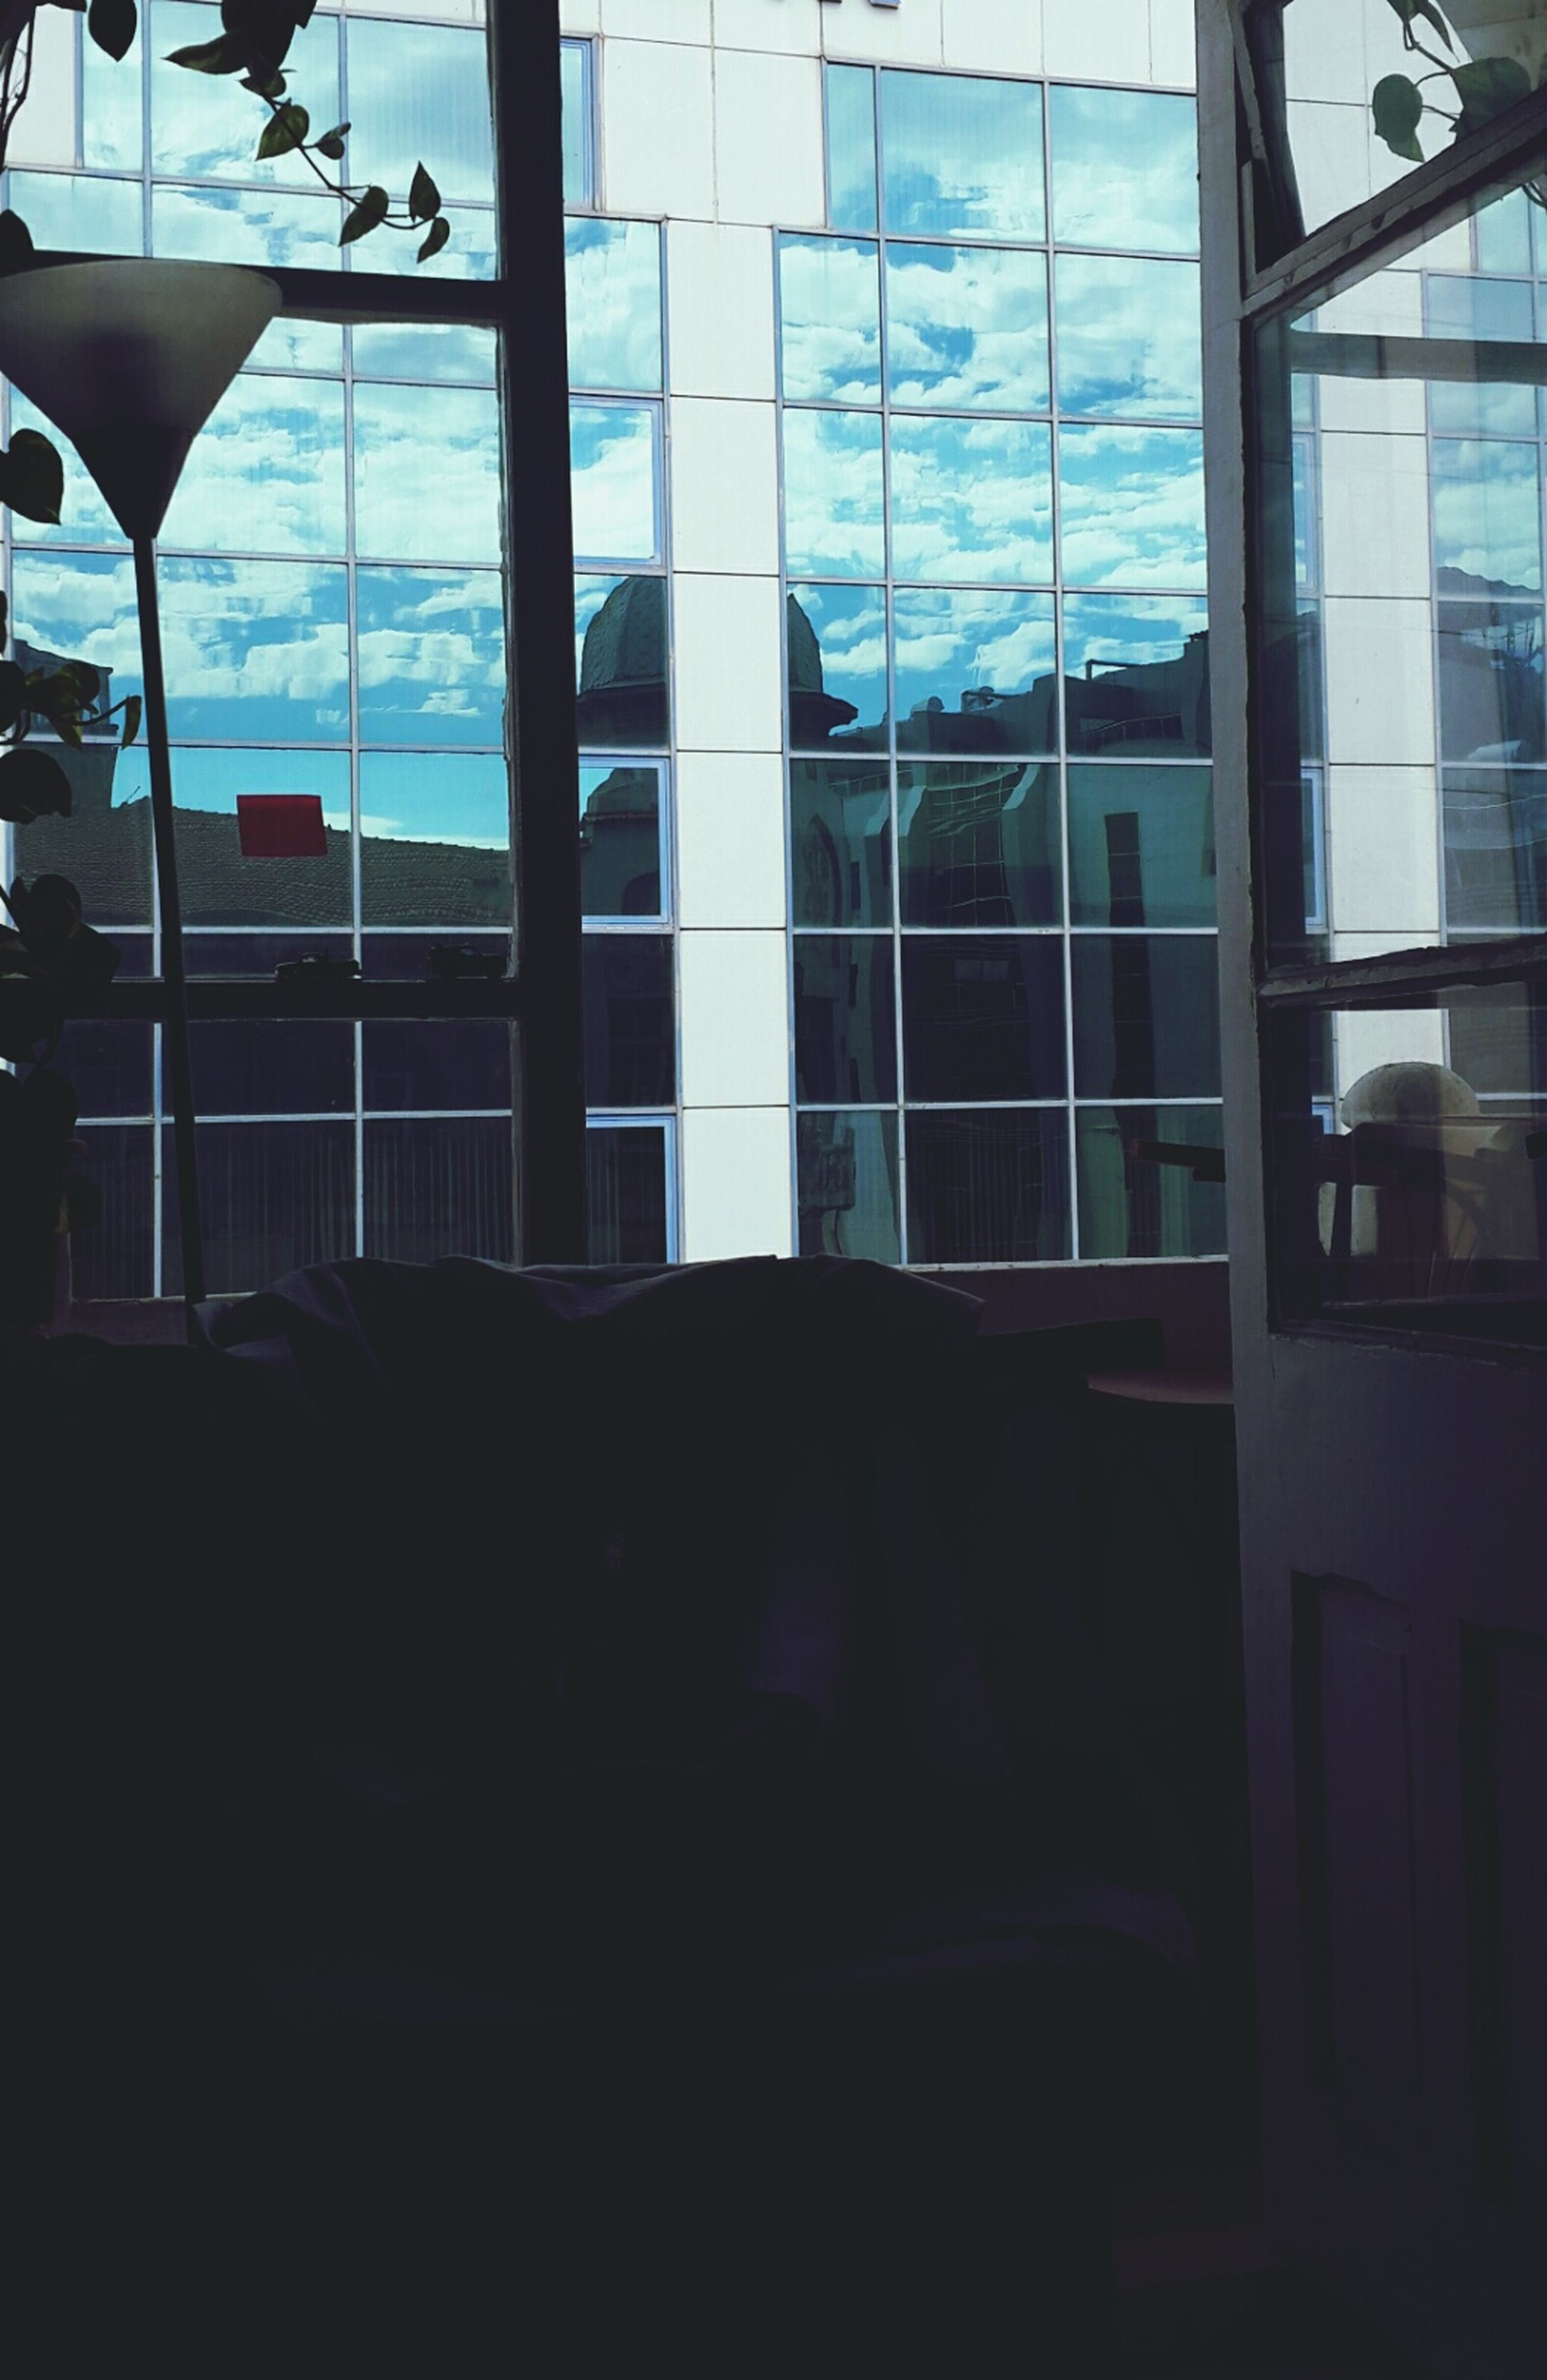 window, glass - material, indoors, architecture, built structure, transparent, building exterior, building, glass, reflection, sunlight, day, looking through window, house, city, home interior, modern, residential building, curtain, sky